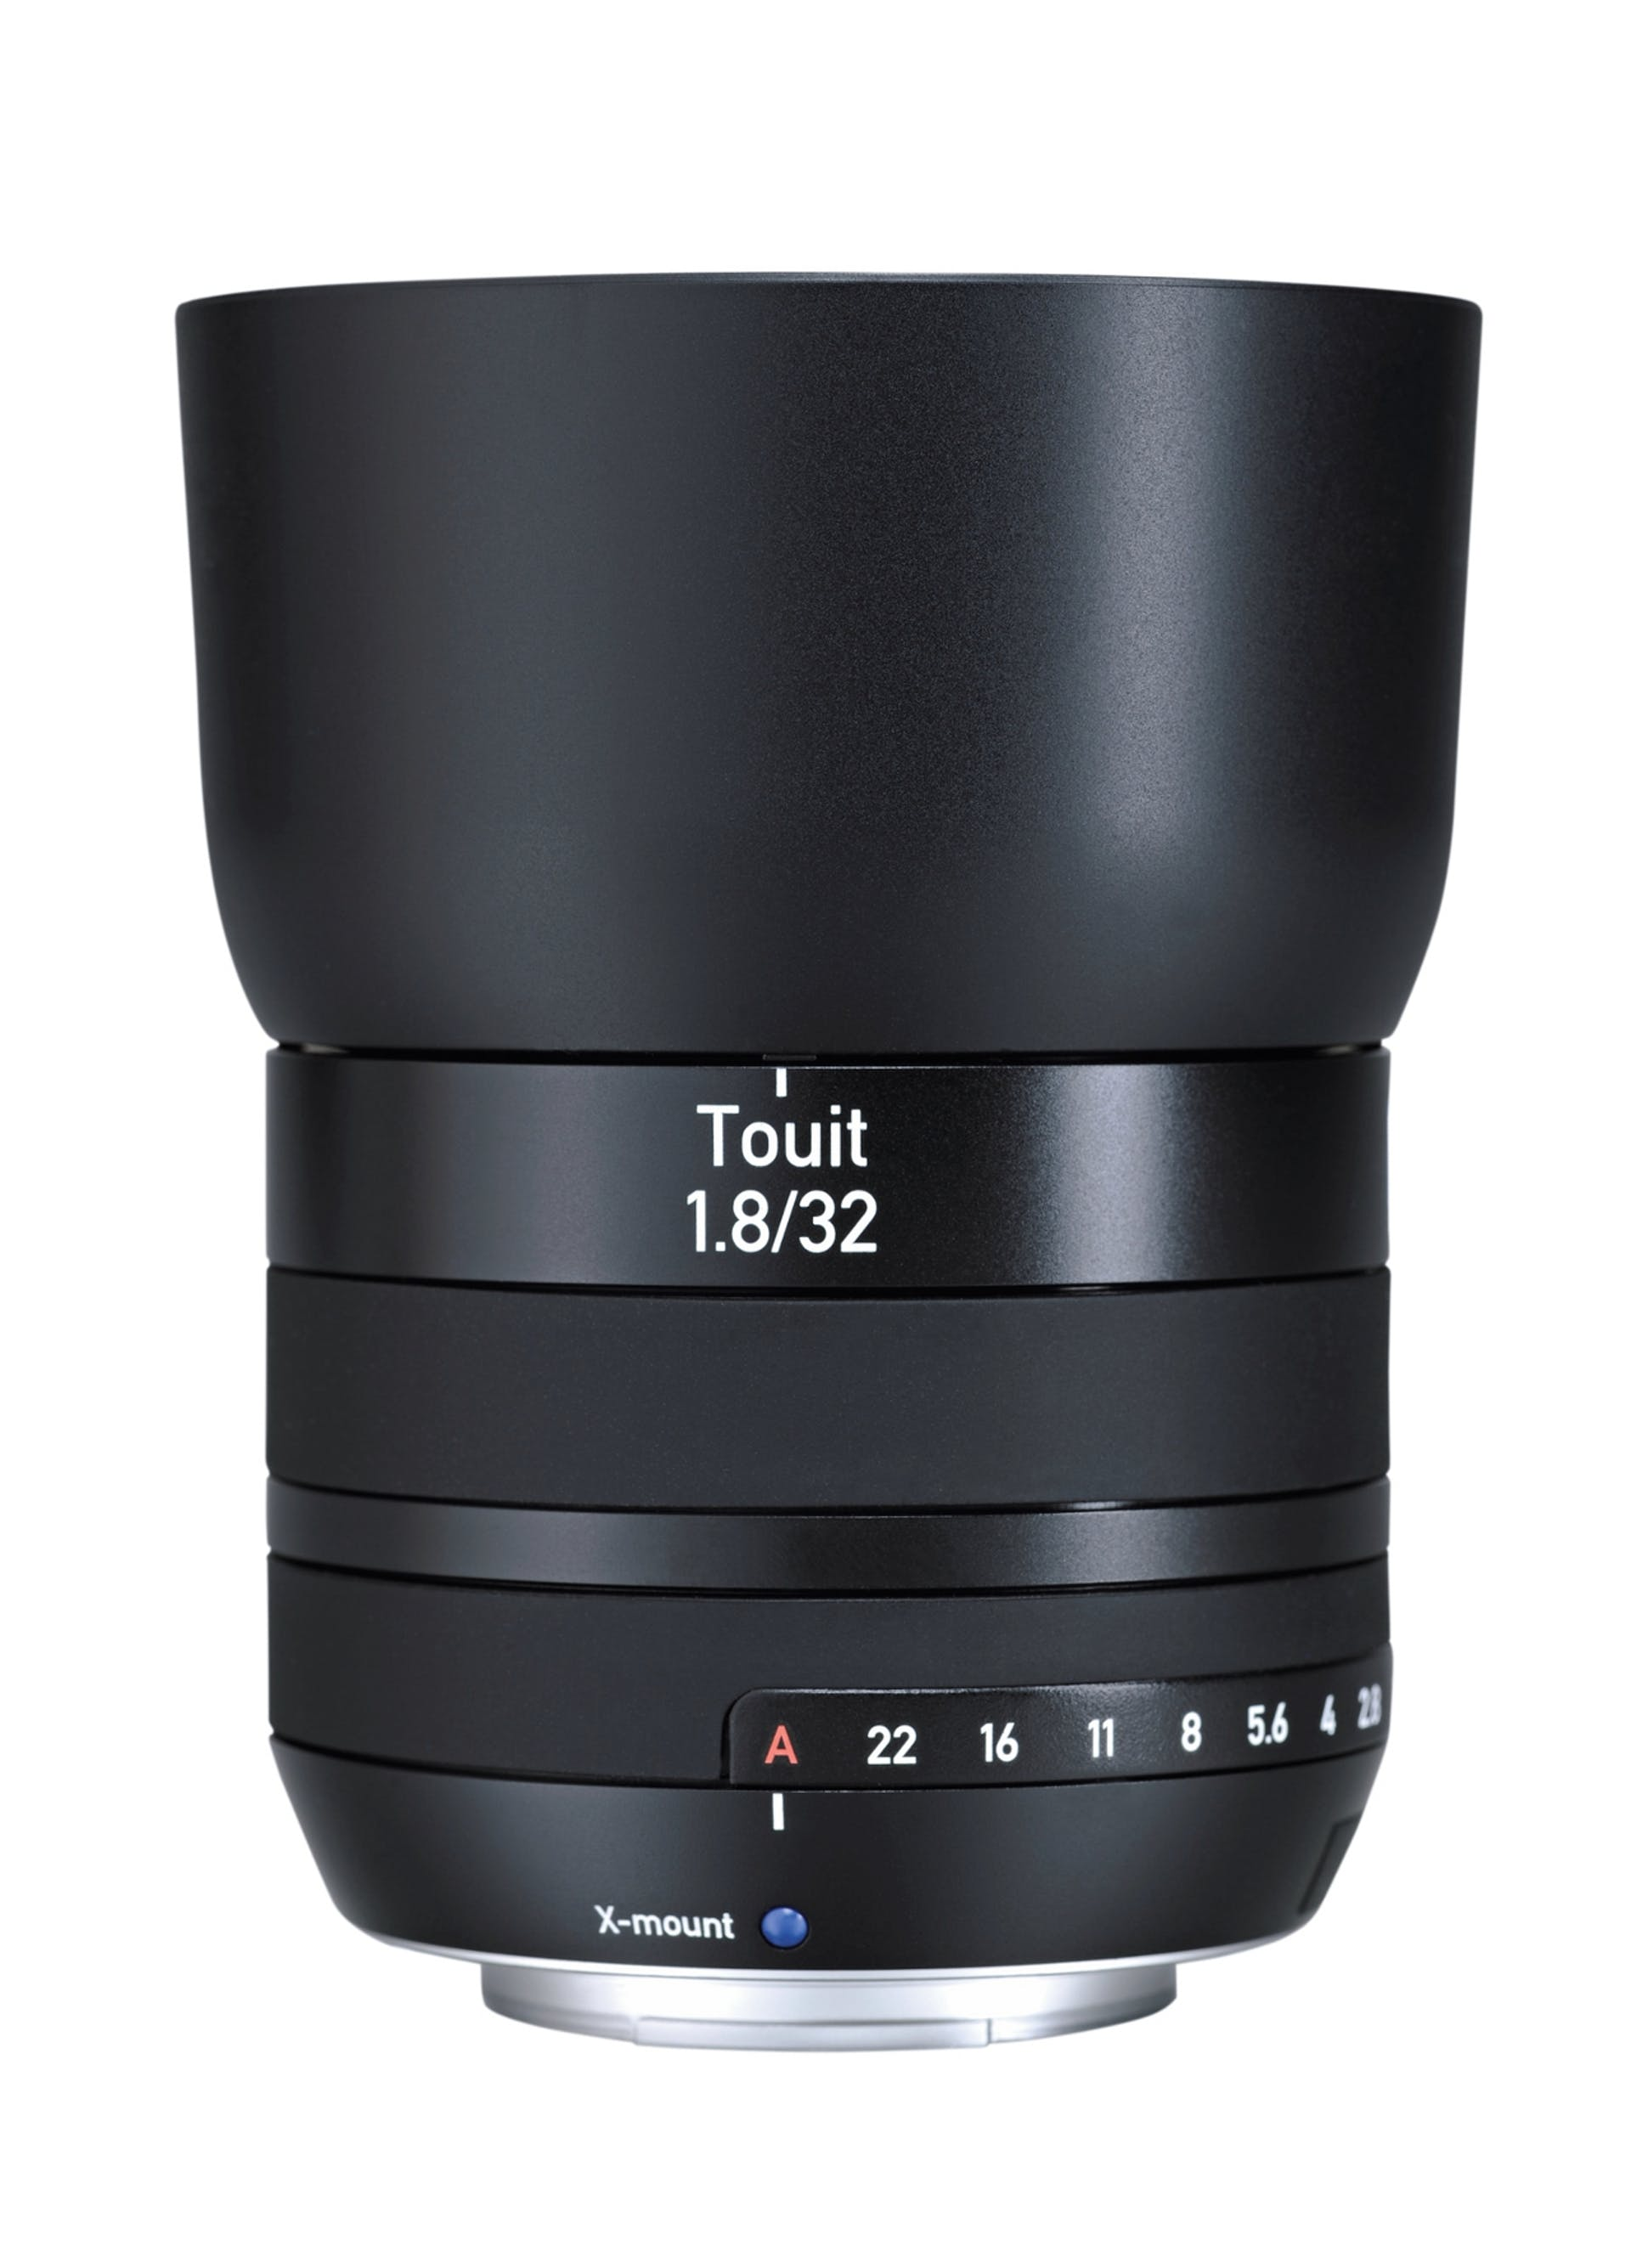 ZEISS Touit 1.8/32